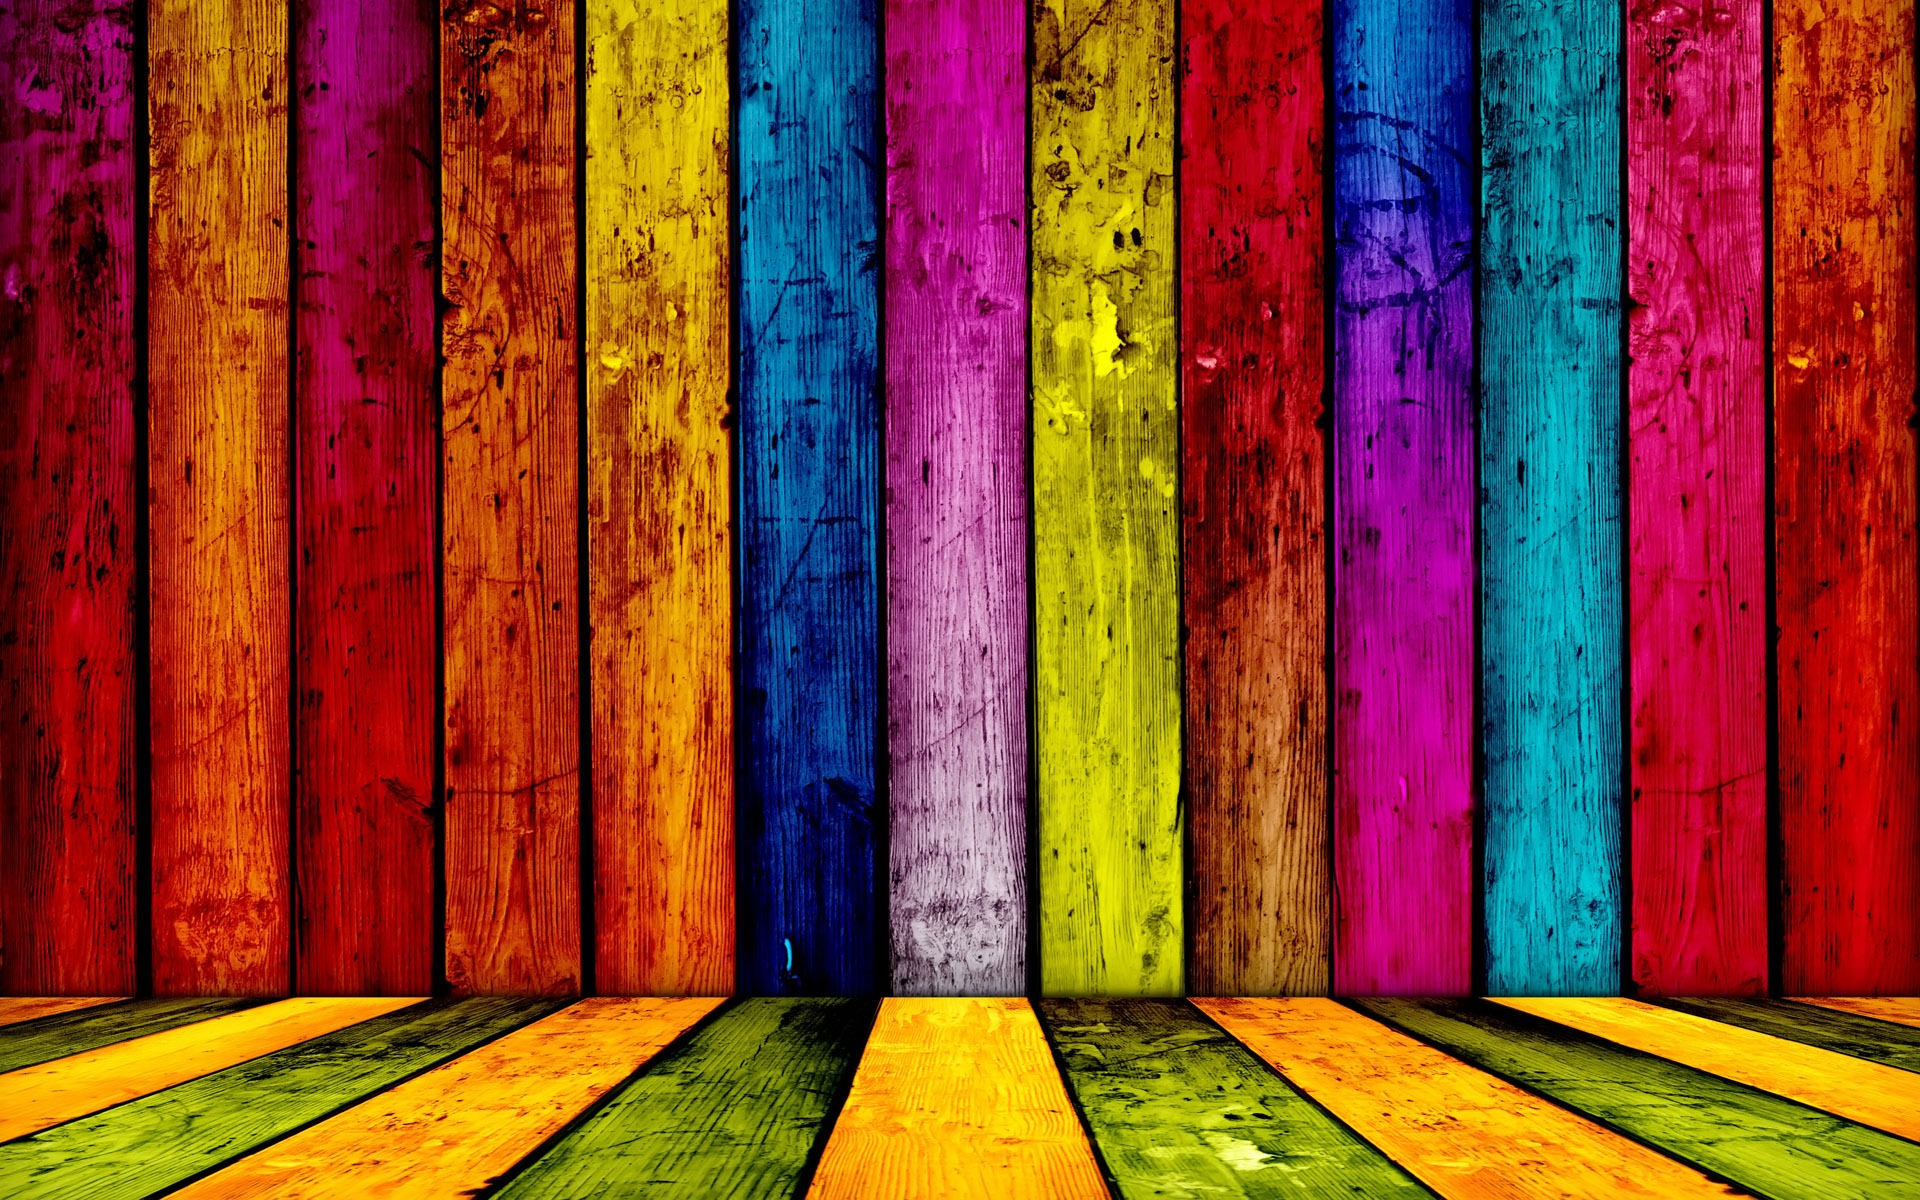 Bright Colorful Wallpaper 1 1 1920x1200 Wallpaper Download